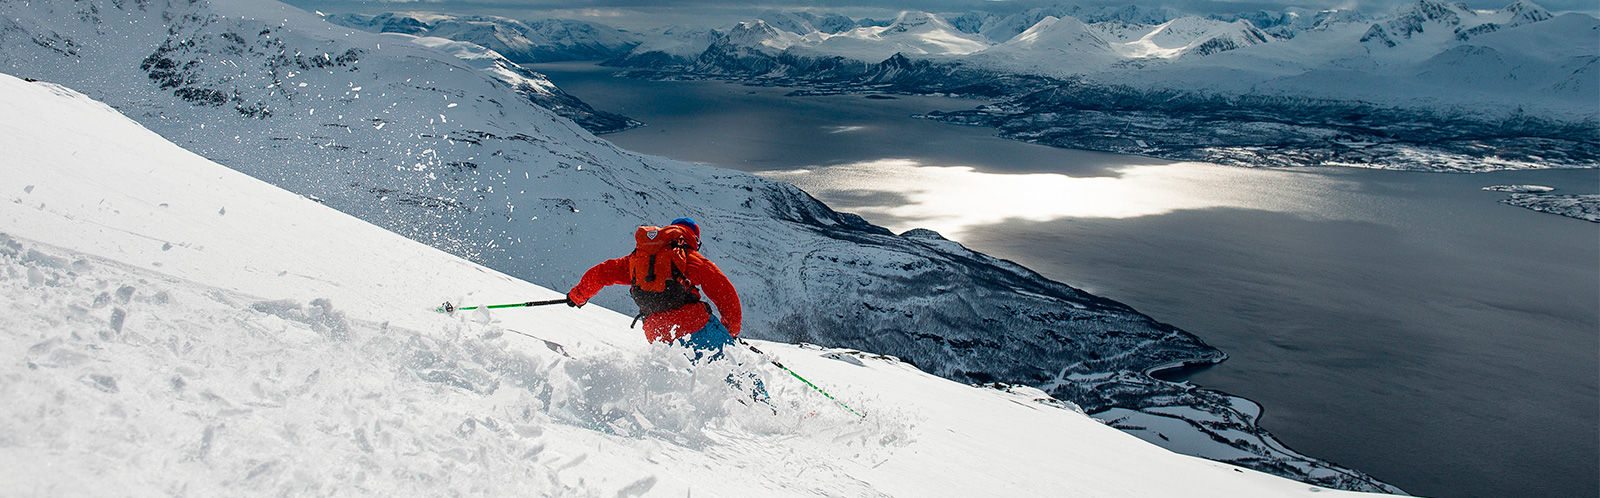 Norrona skier in Georgia with Norrona shell jacket and pants lyngen